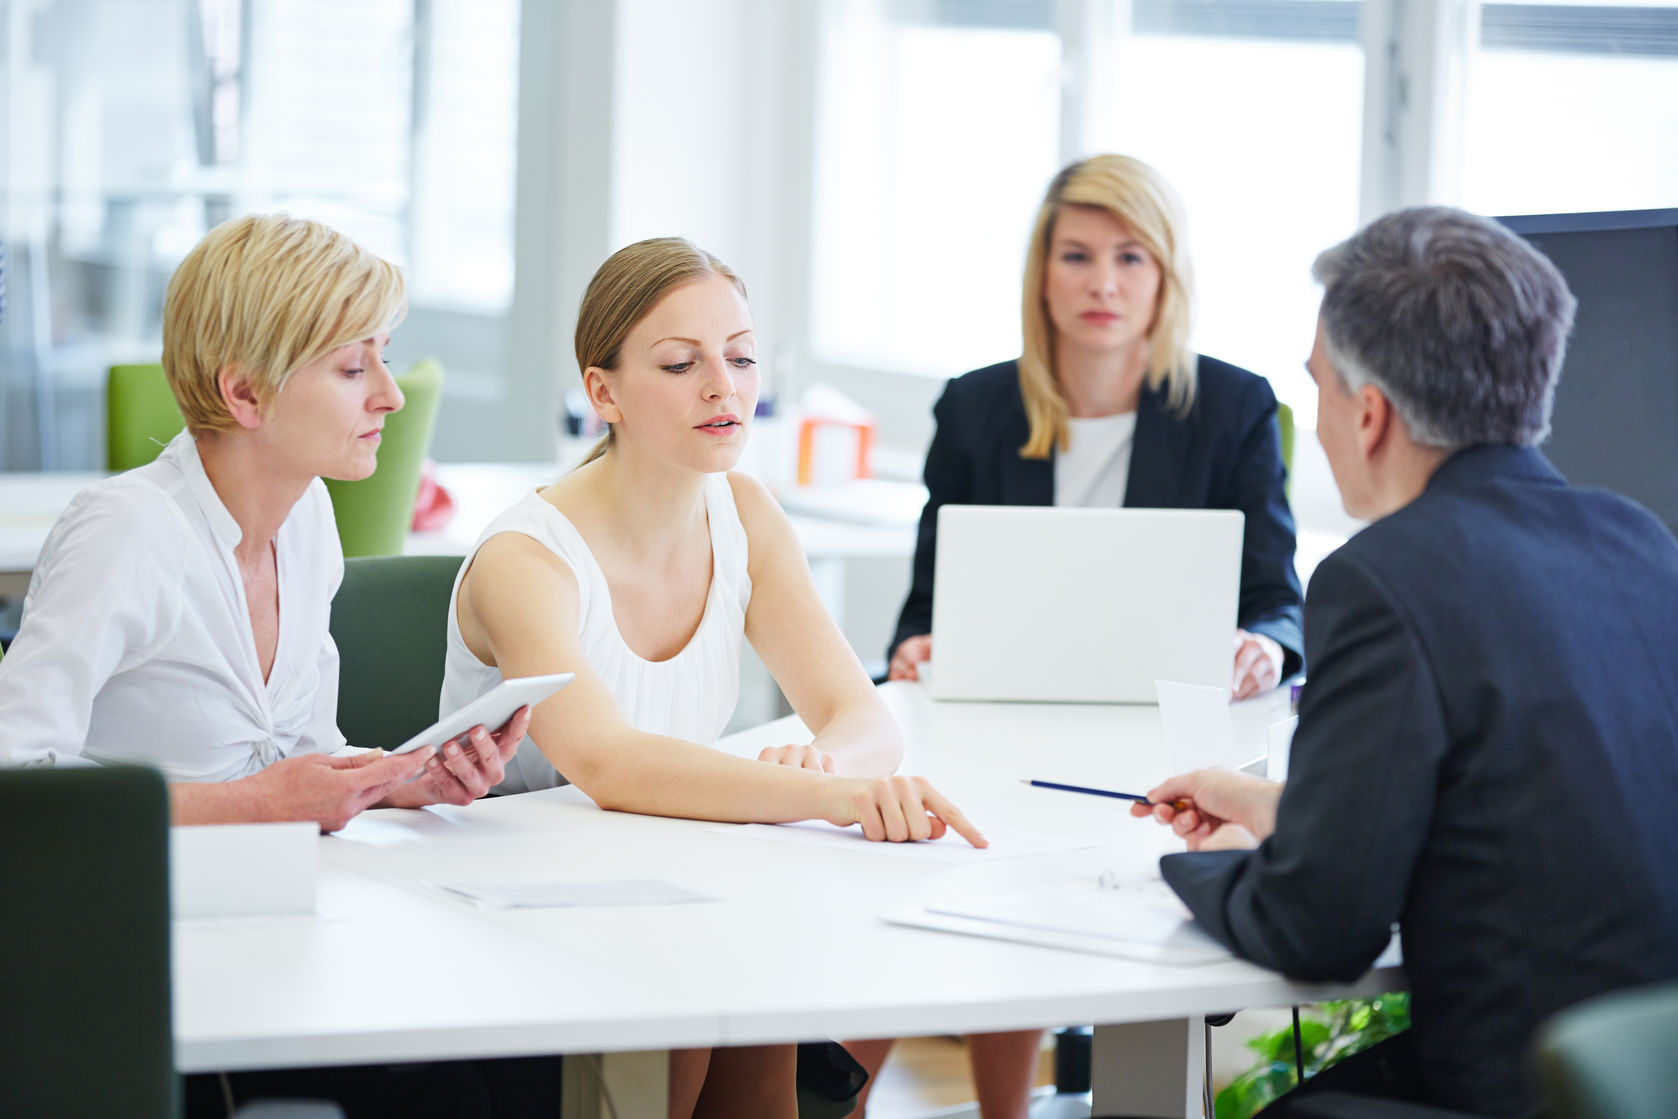 Even experienced managers are often uncomfortable negotiating and communicating with other employees or managers.